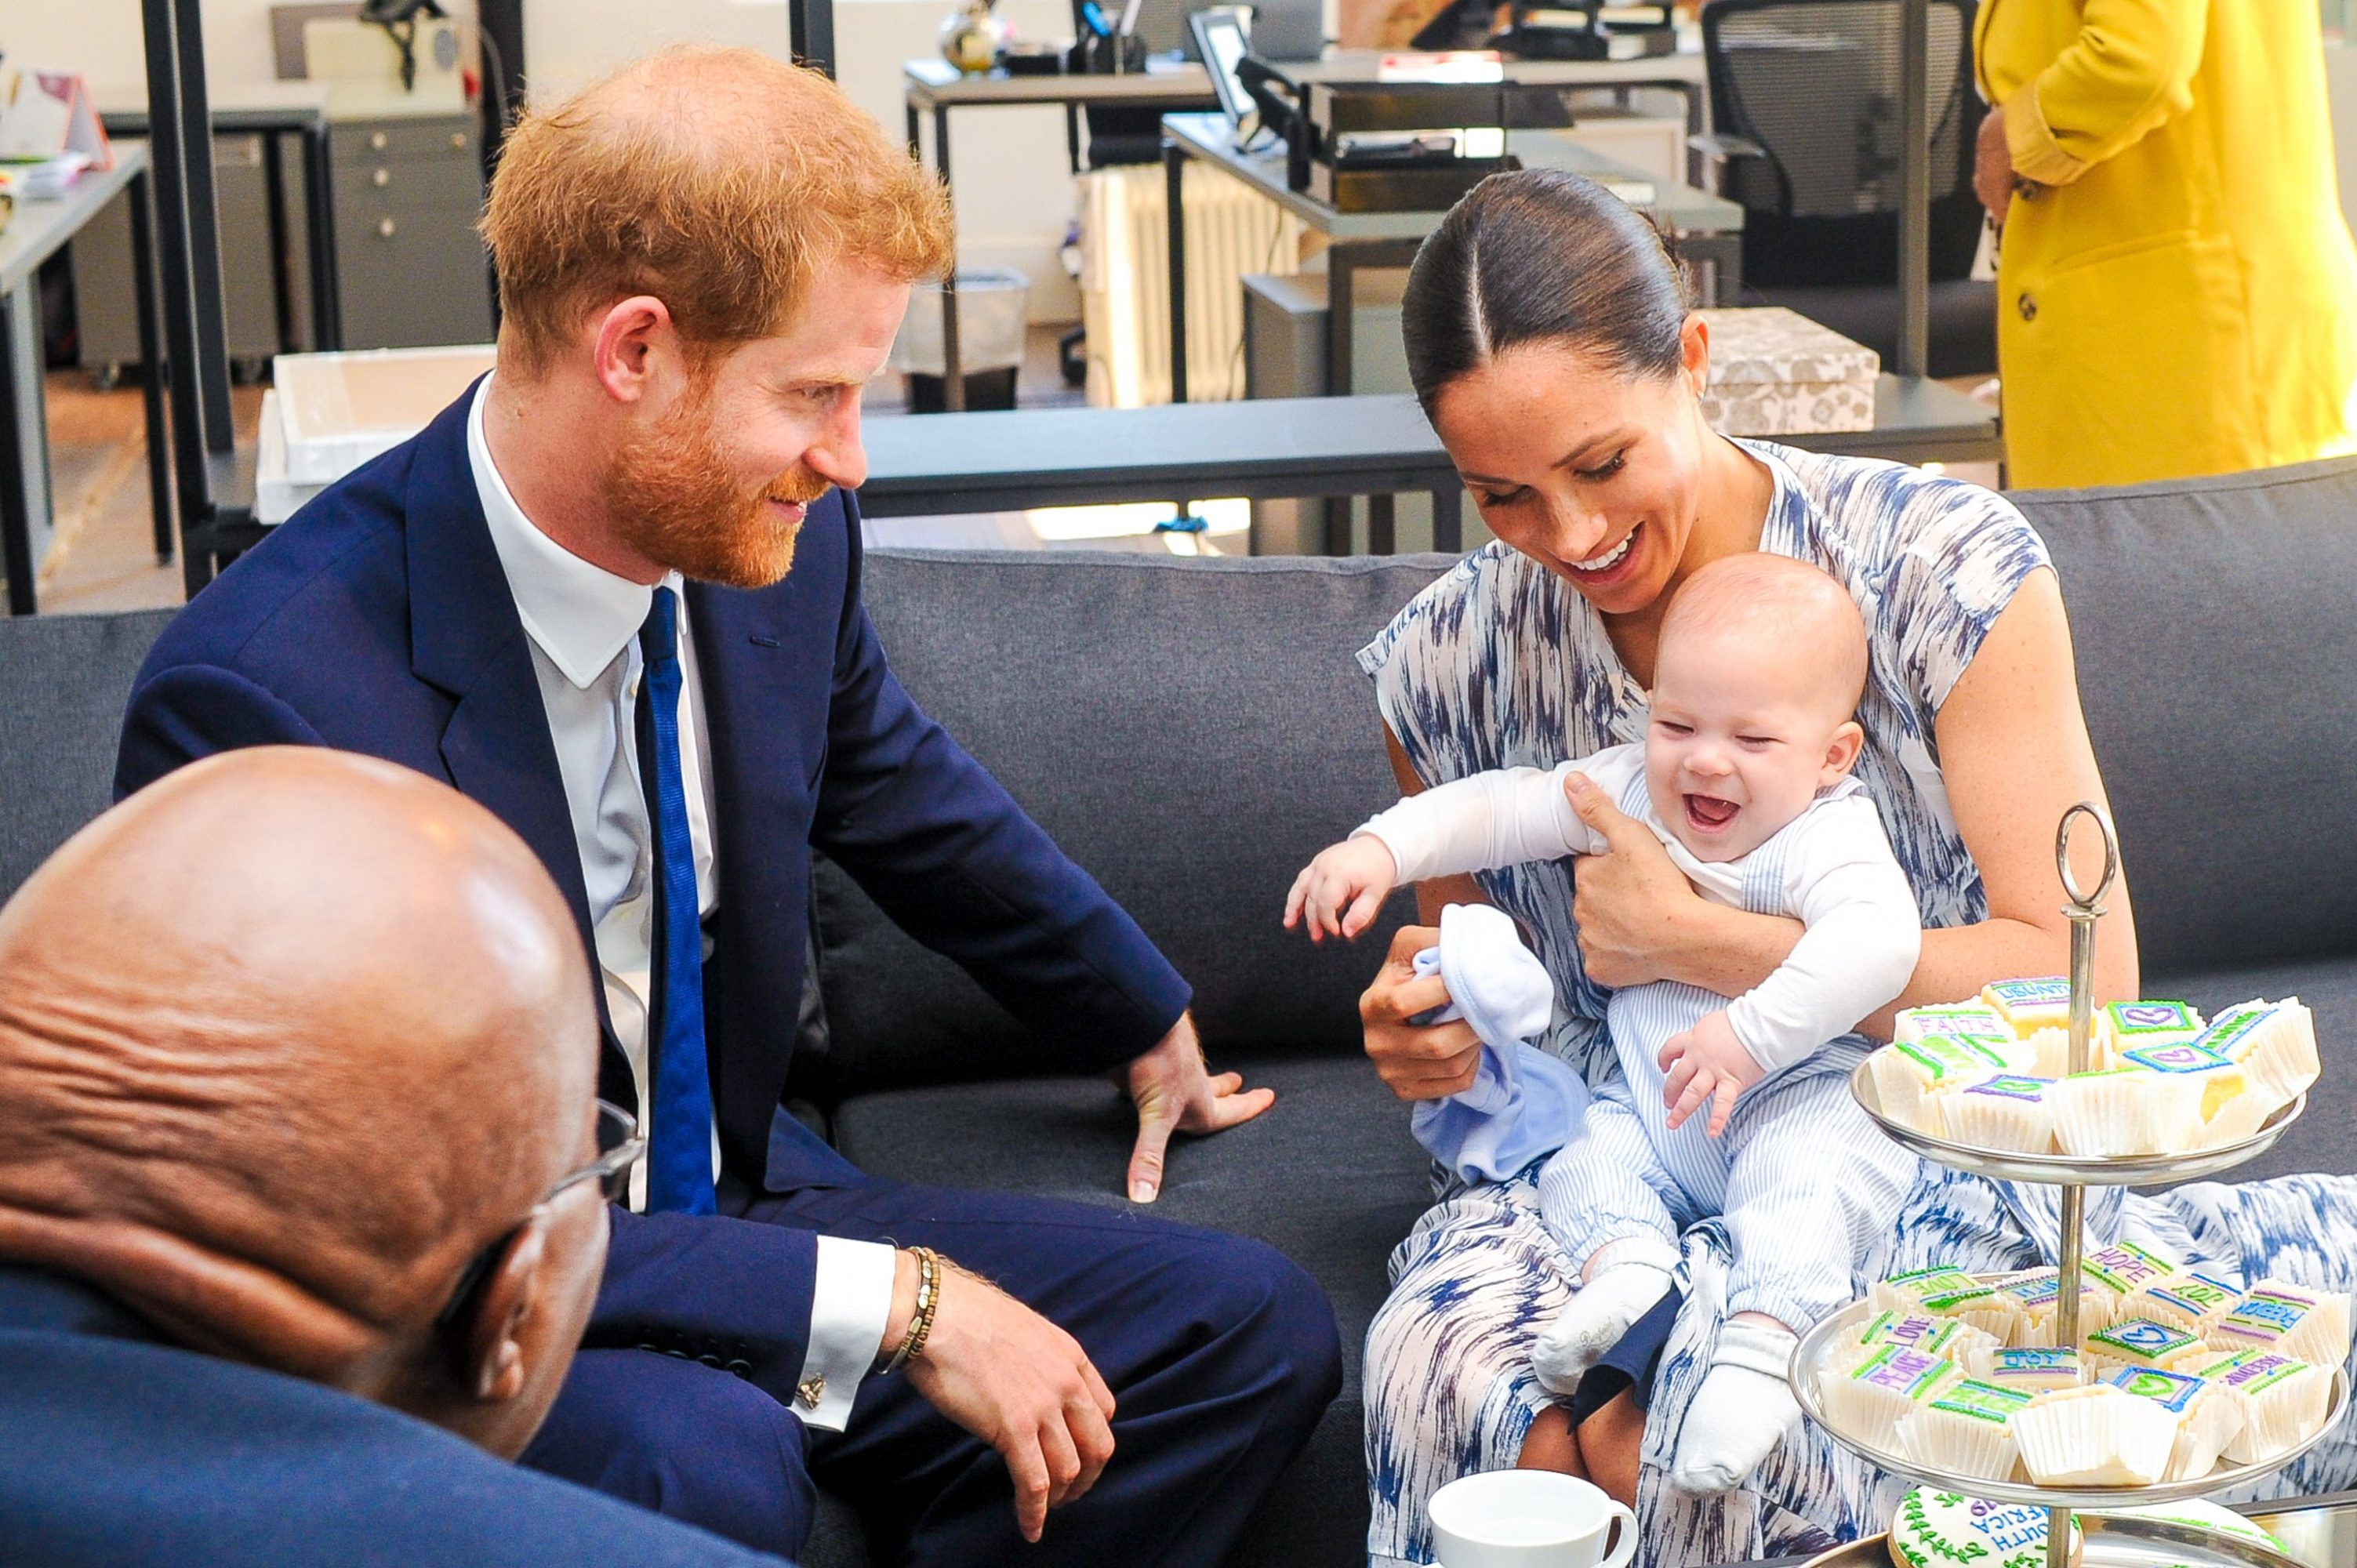 meghan markle and prince harry want to spend thanksgiving in u s meghan markle and prince harry want to